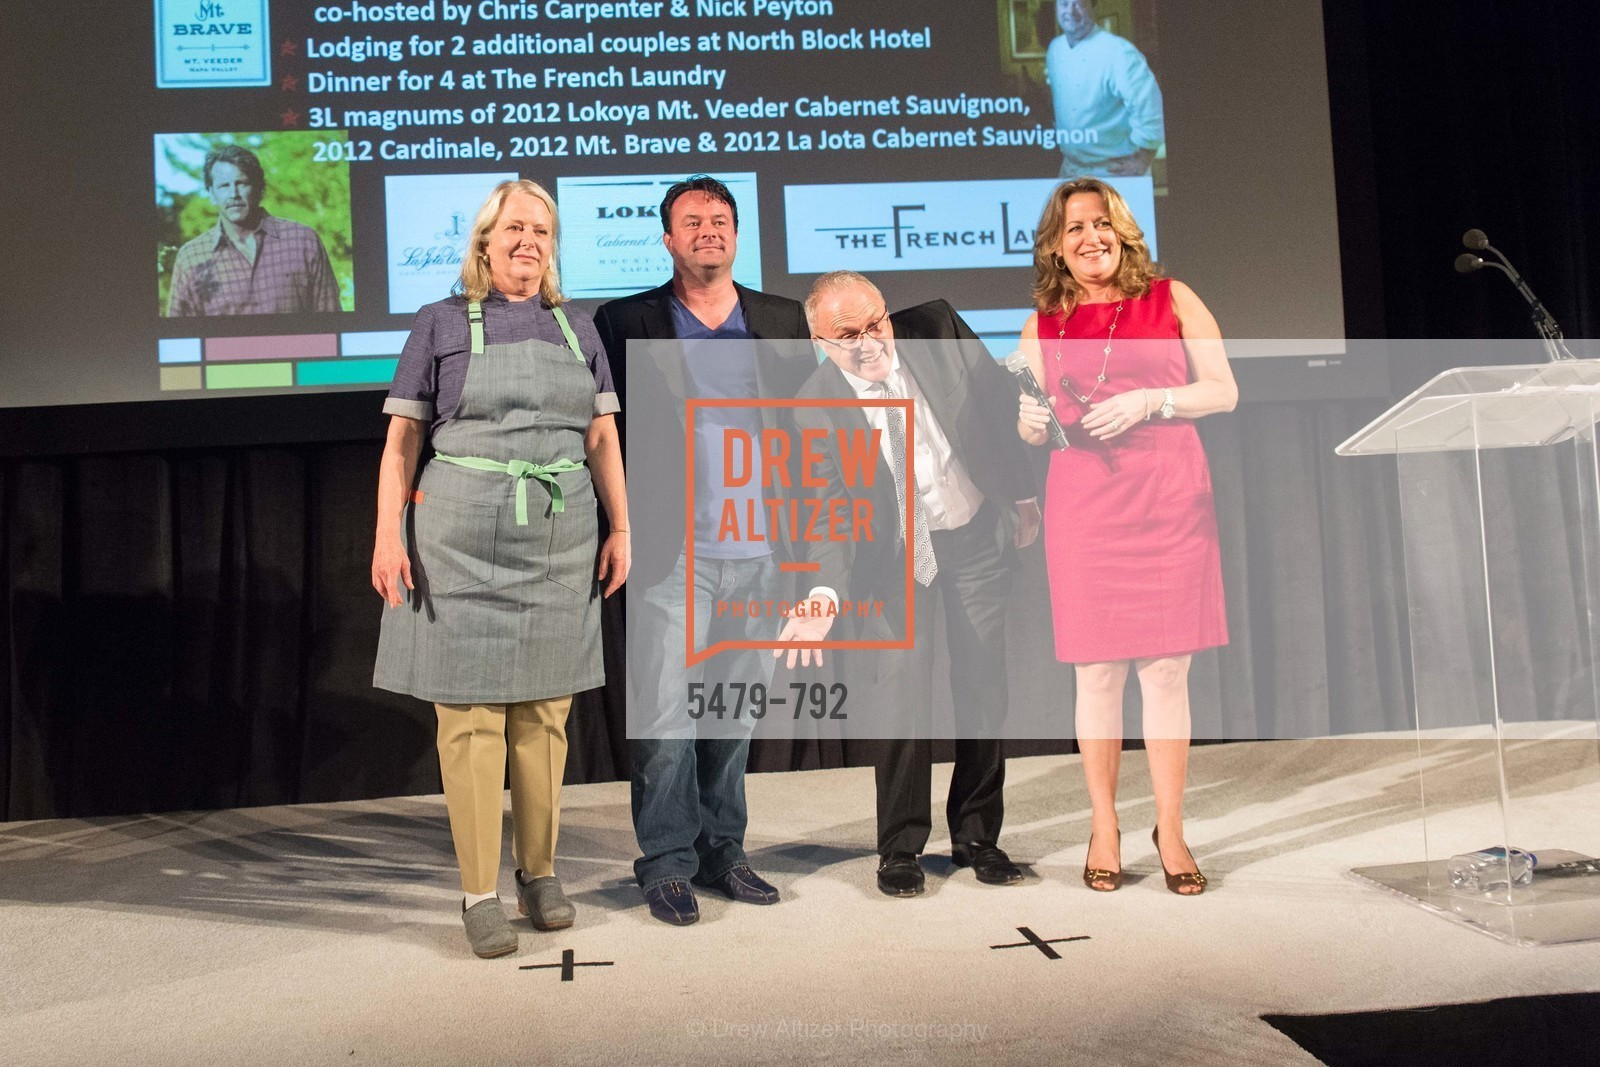 Nancy Oakes, Douglas Keane, Nick Peyton, MEALS ON WHEELS OF SAN FRANCISCO'S 28th Annual Star Chefs and Vintners Gala, US, April 19th, 2015,Drew Altizer, Drew Altizer Photography, full-service agency, private events, San Francisco photographer, photographer california